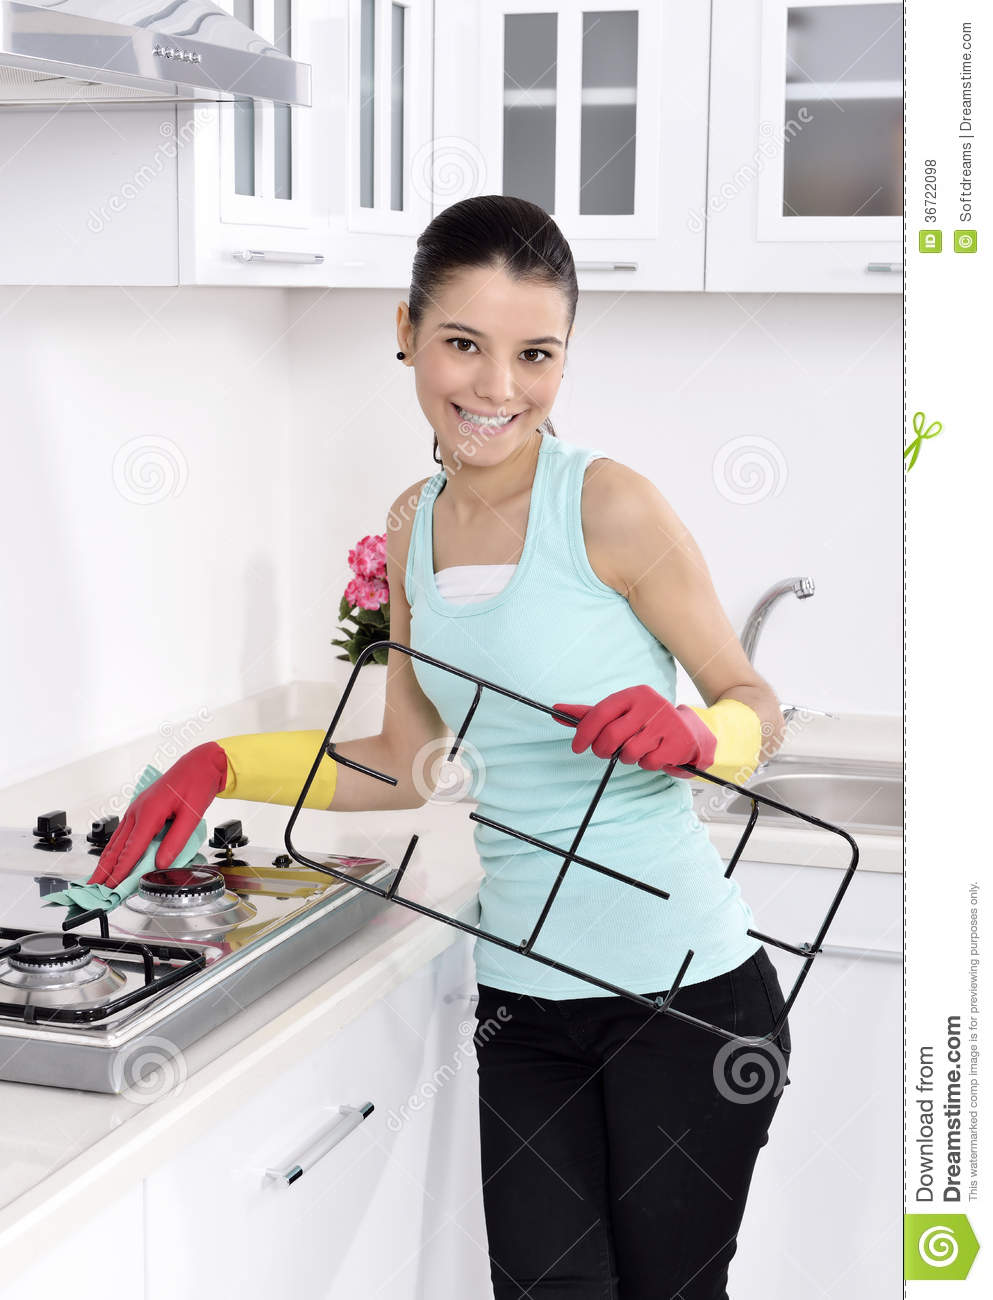 Cleaning the house royalty free stock photos image 36722098 for House cleaning stock photos